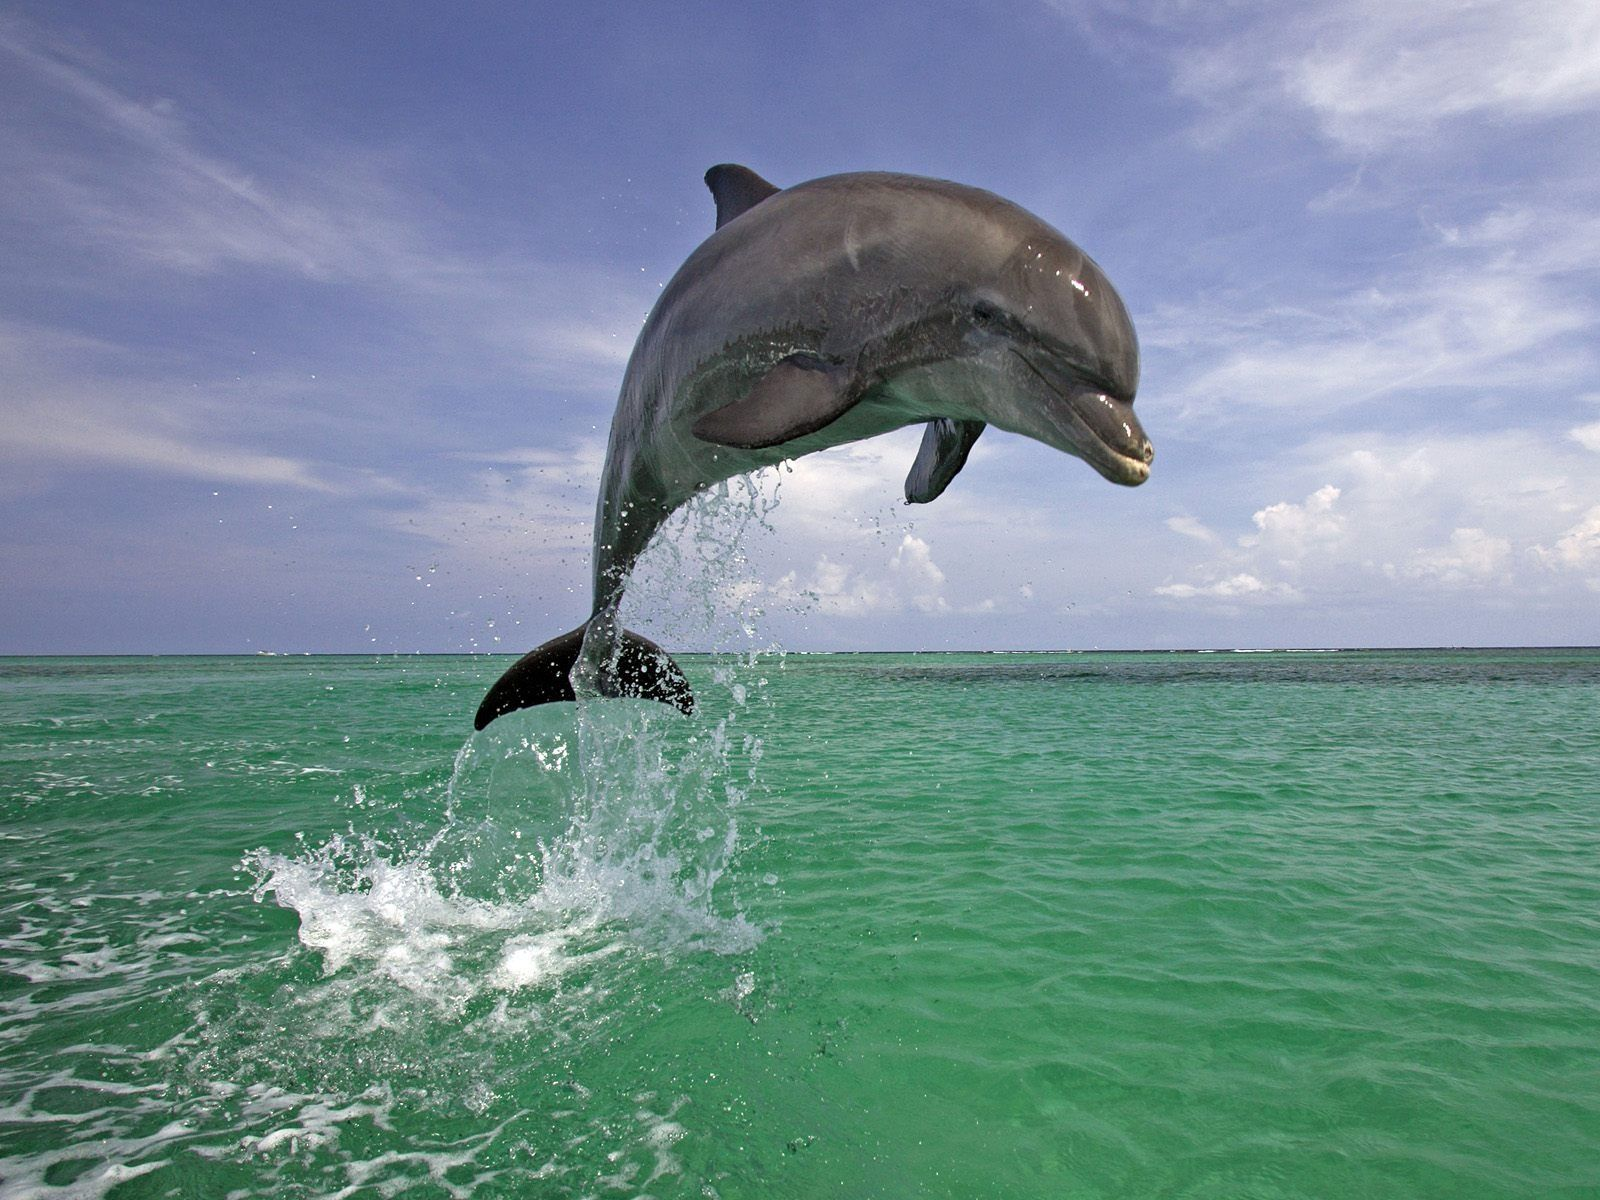 Dolphins Pics Dolphin Jumping Out Of Water 1600x1200 564222 Animaux Beaux Animaux Image De Dauphin